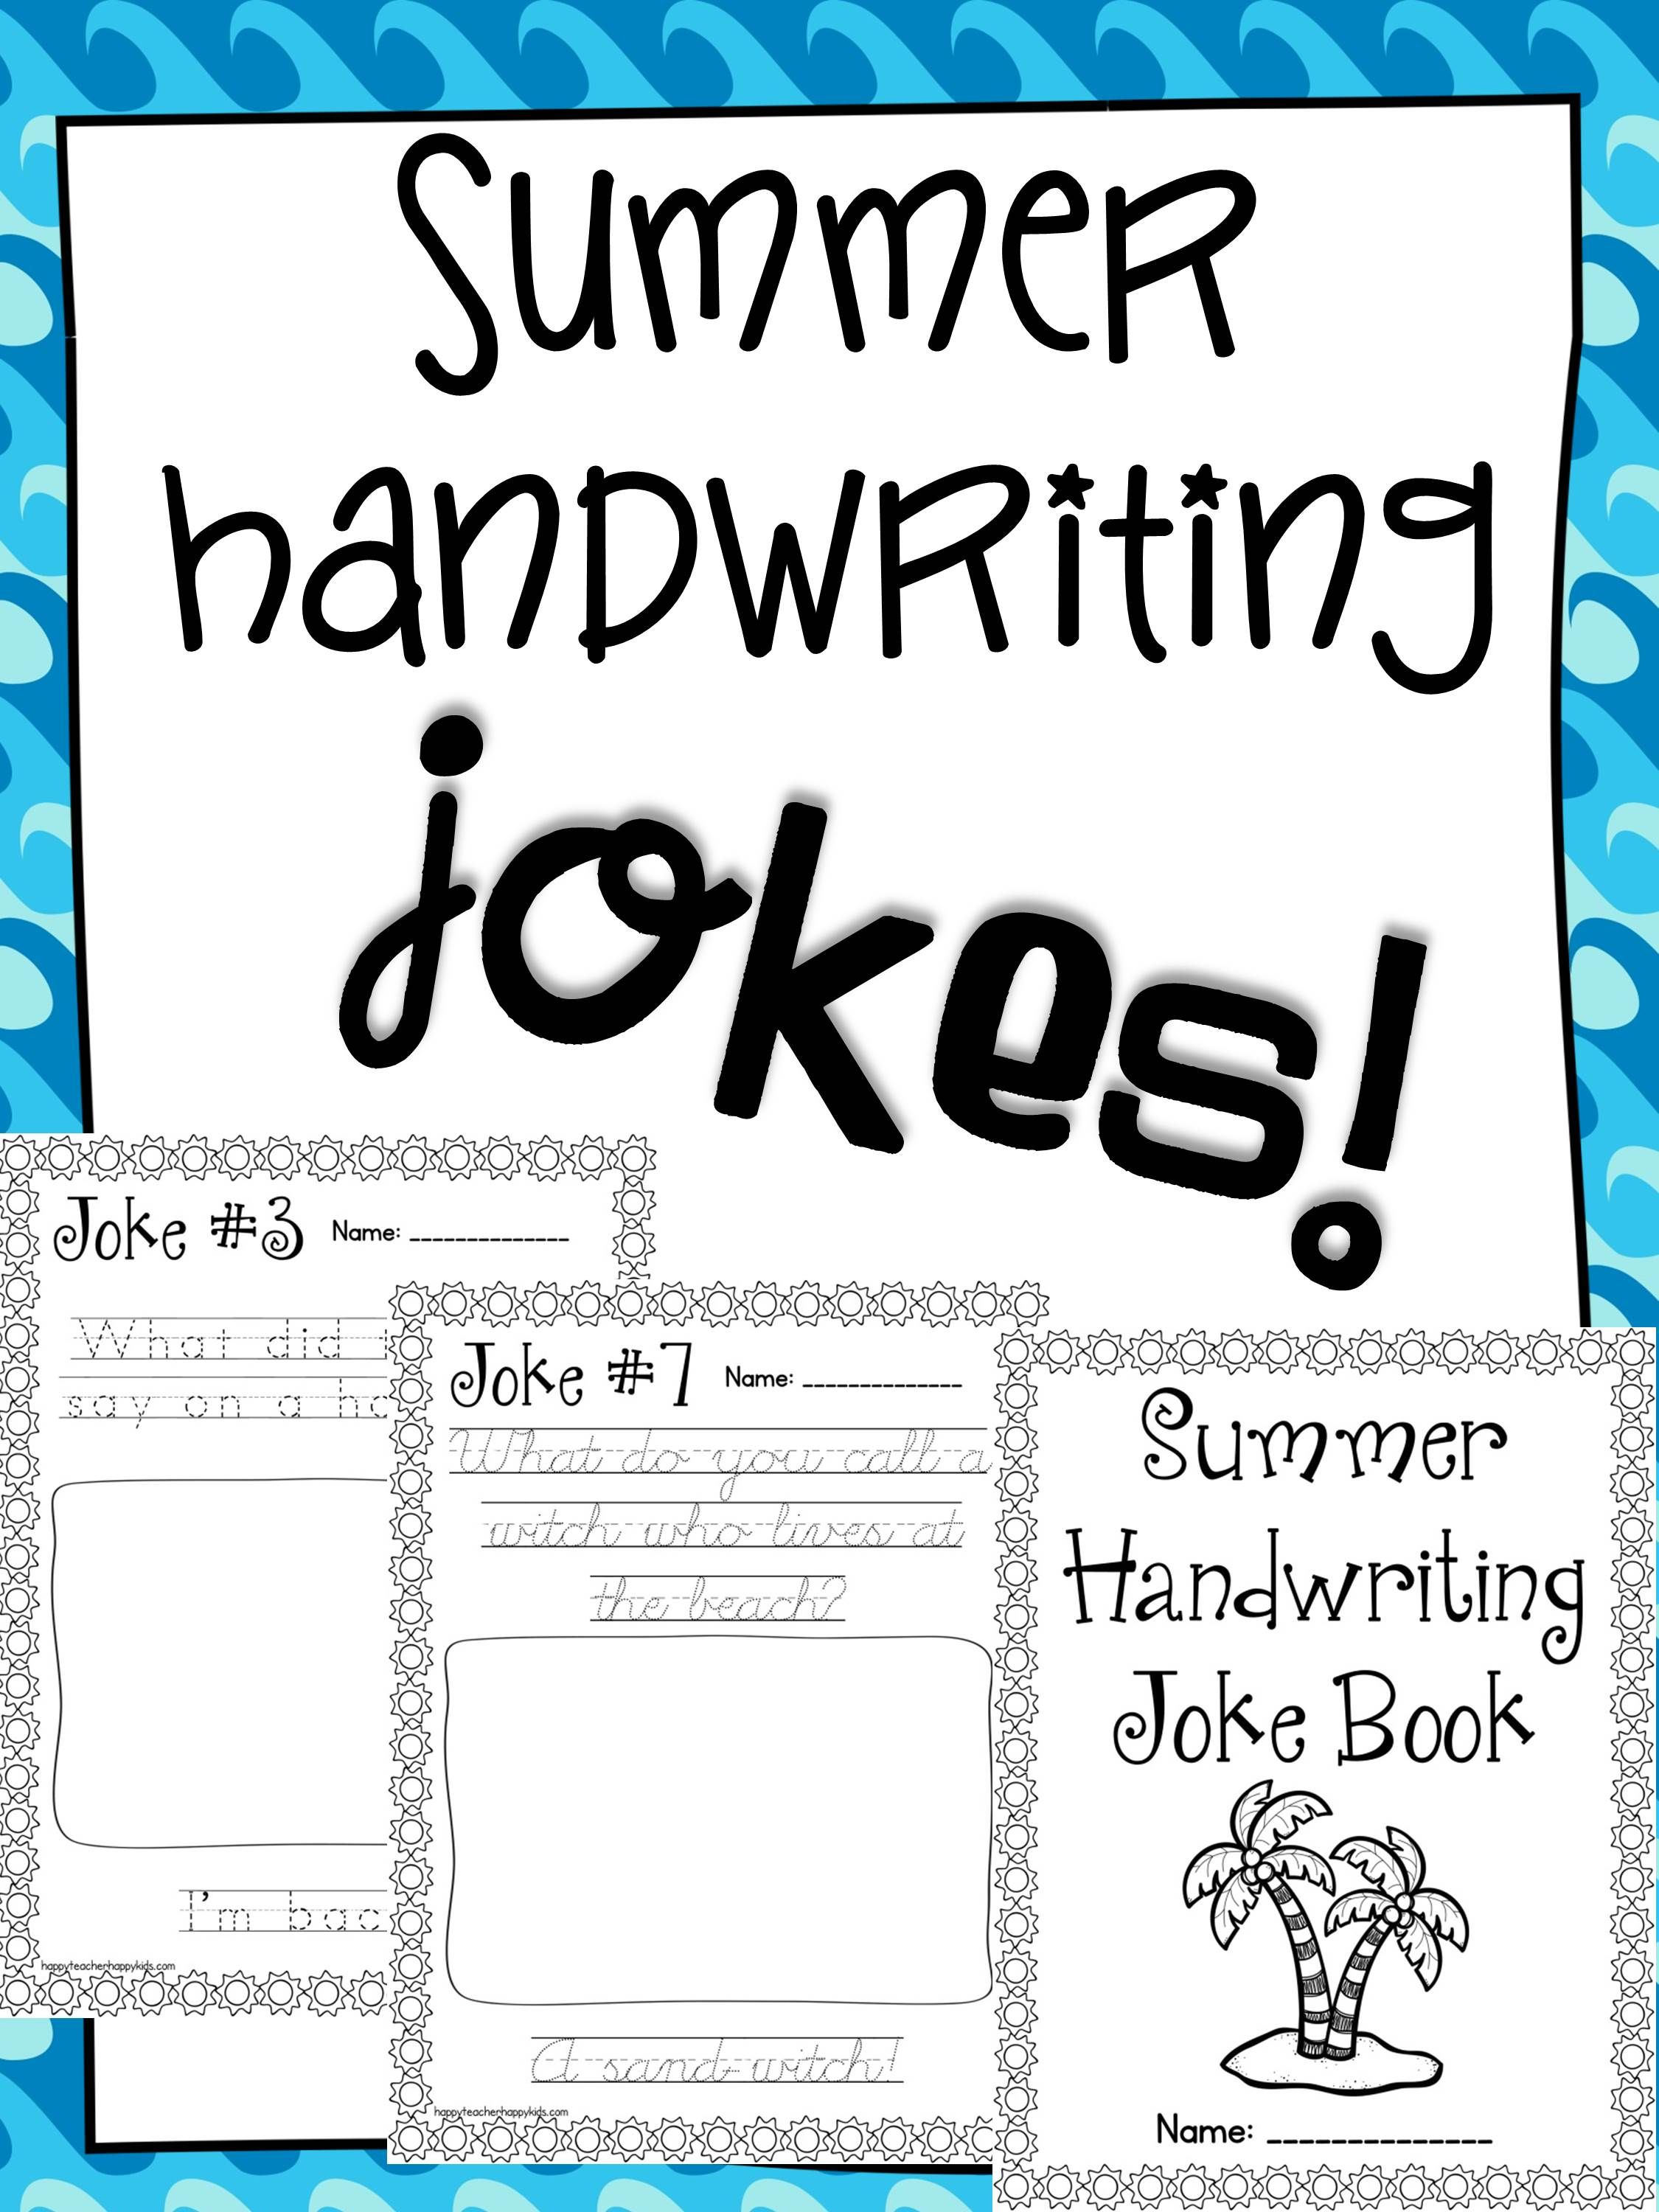 Free Summer Handwriting Joke Book Over On My Facebook Page